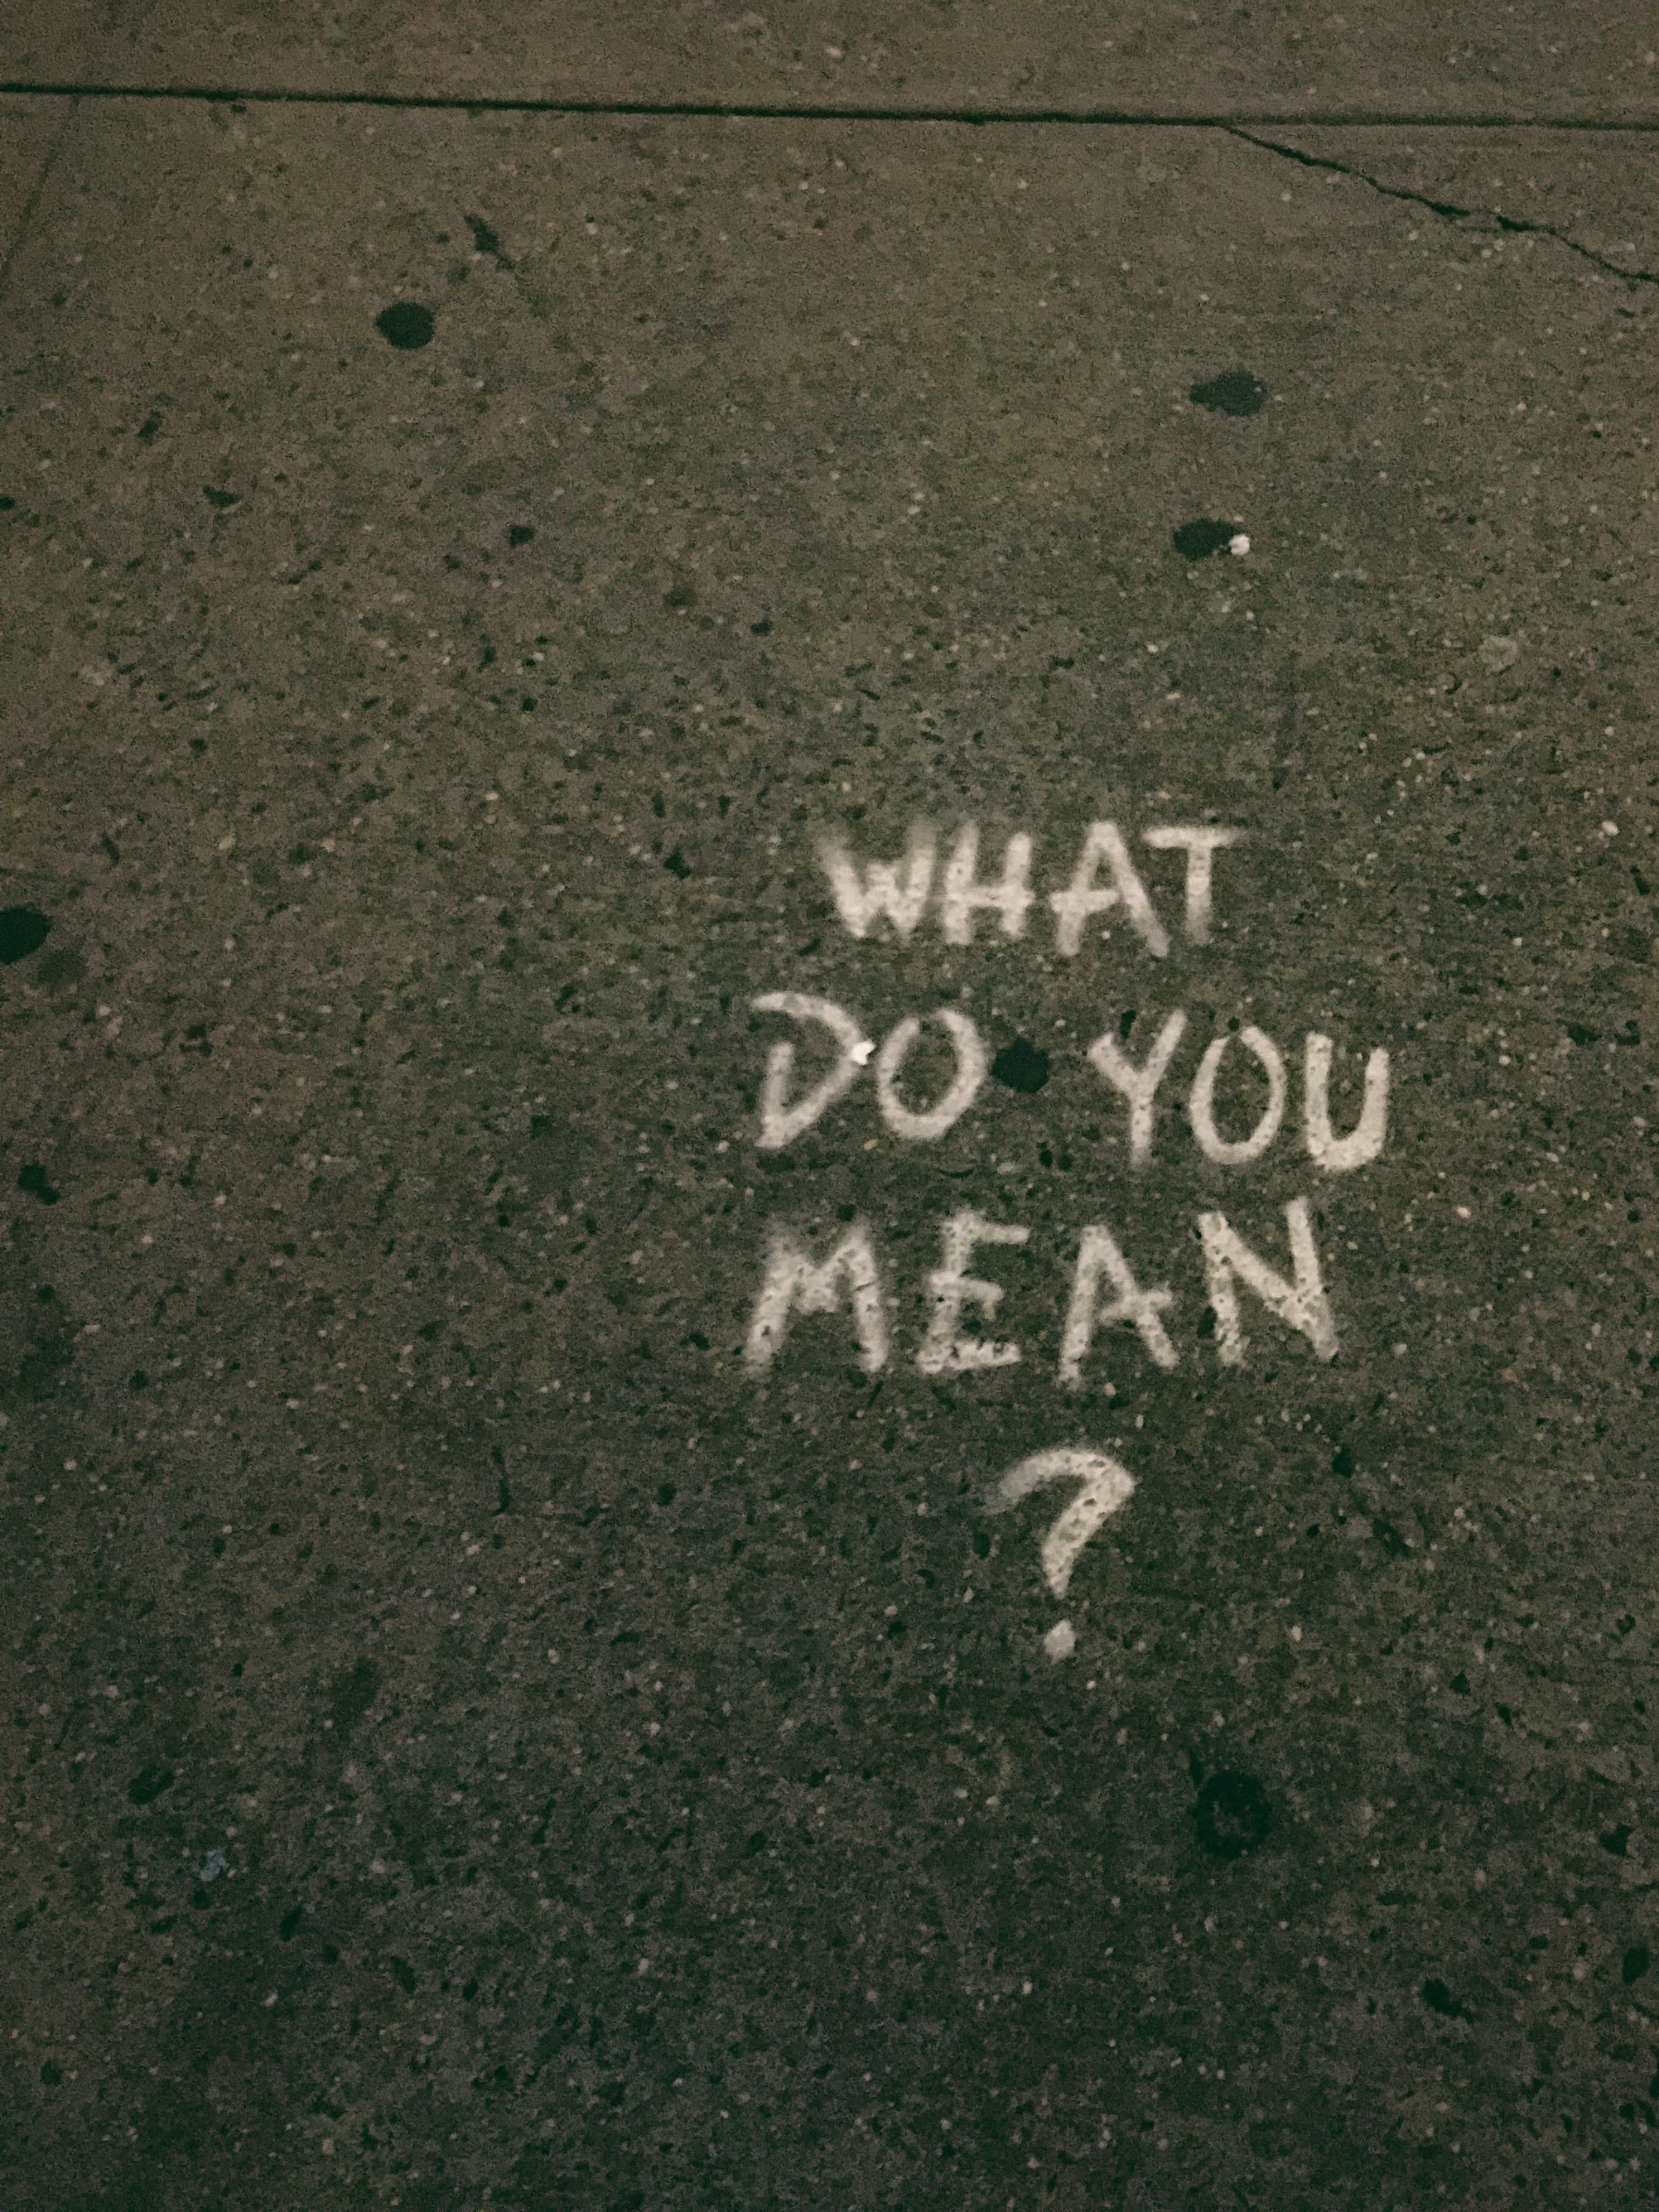 """A sidewalk with the words """"What do you mean?"""" written on the ground"""